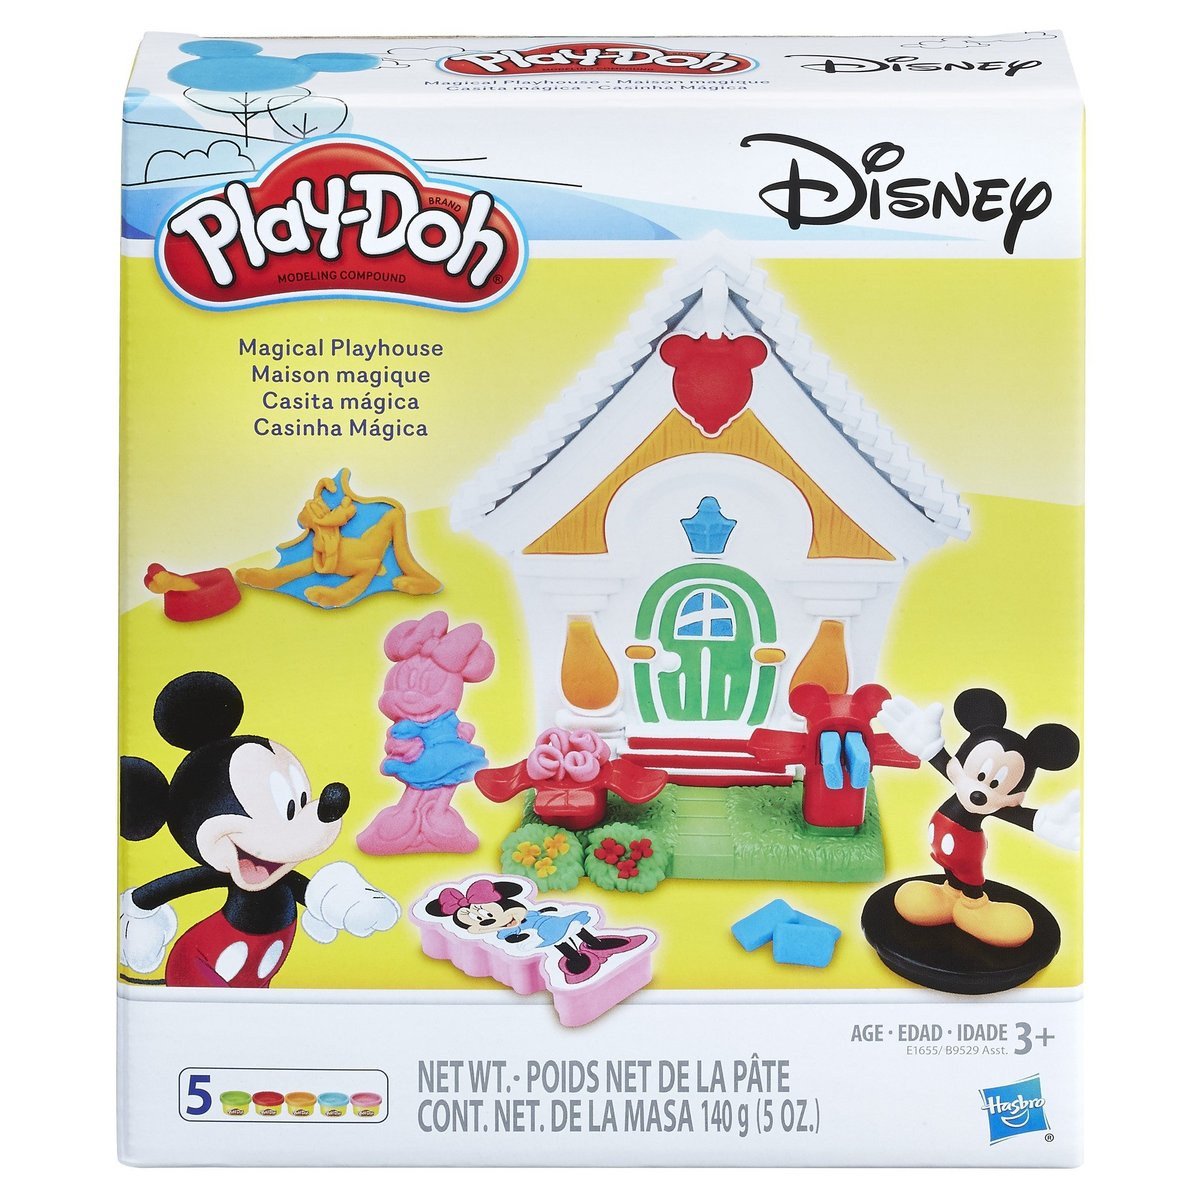 PLAY-DOH Disney Magical Playhouse